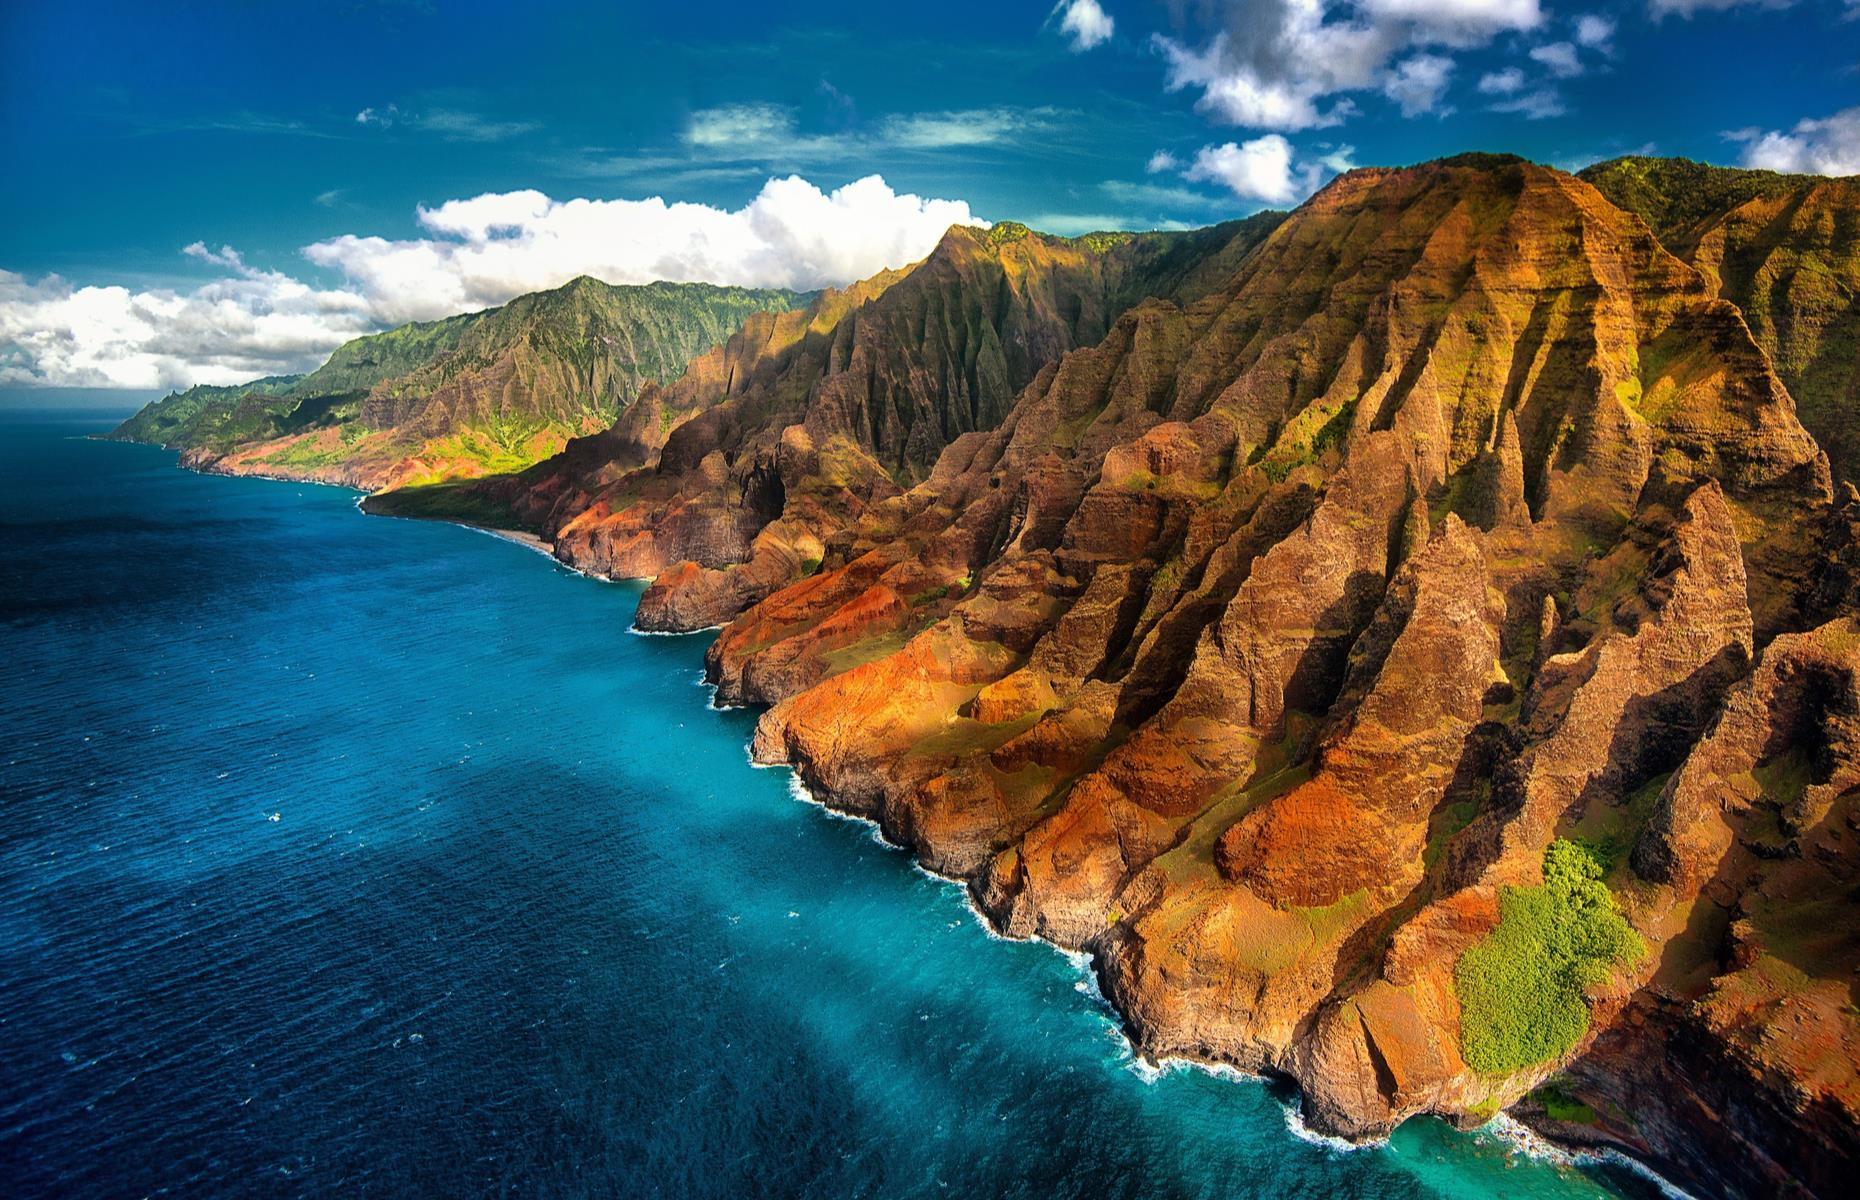 Slide 34 of 41: The grooves, peaks and bright colors of Nā Pali make it one of the most jaw-dropping stretches of Hawaii's coastline (no small achievement given the sheer beauty of the state's shores). Nā Pali ripples out for around 17 miles (27km), beaten by the North Pacific, whose waters attract humpback whales. The challenging Kalalau Trail wriggles through the landscape too. Take a look at more otherworldly spots in the USA.